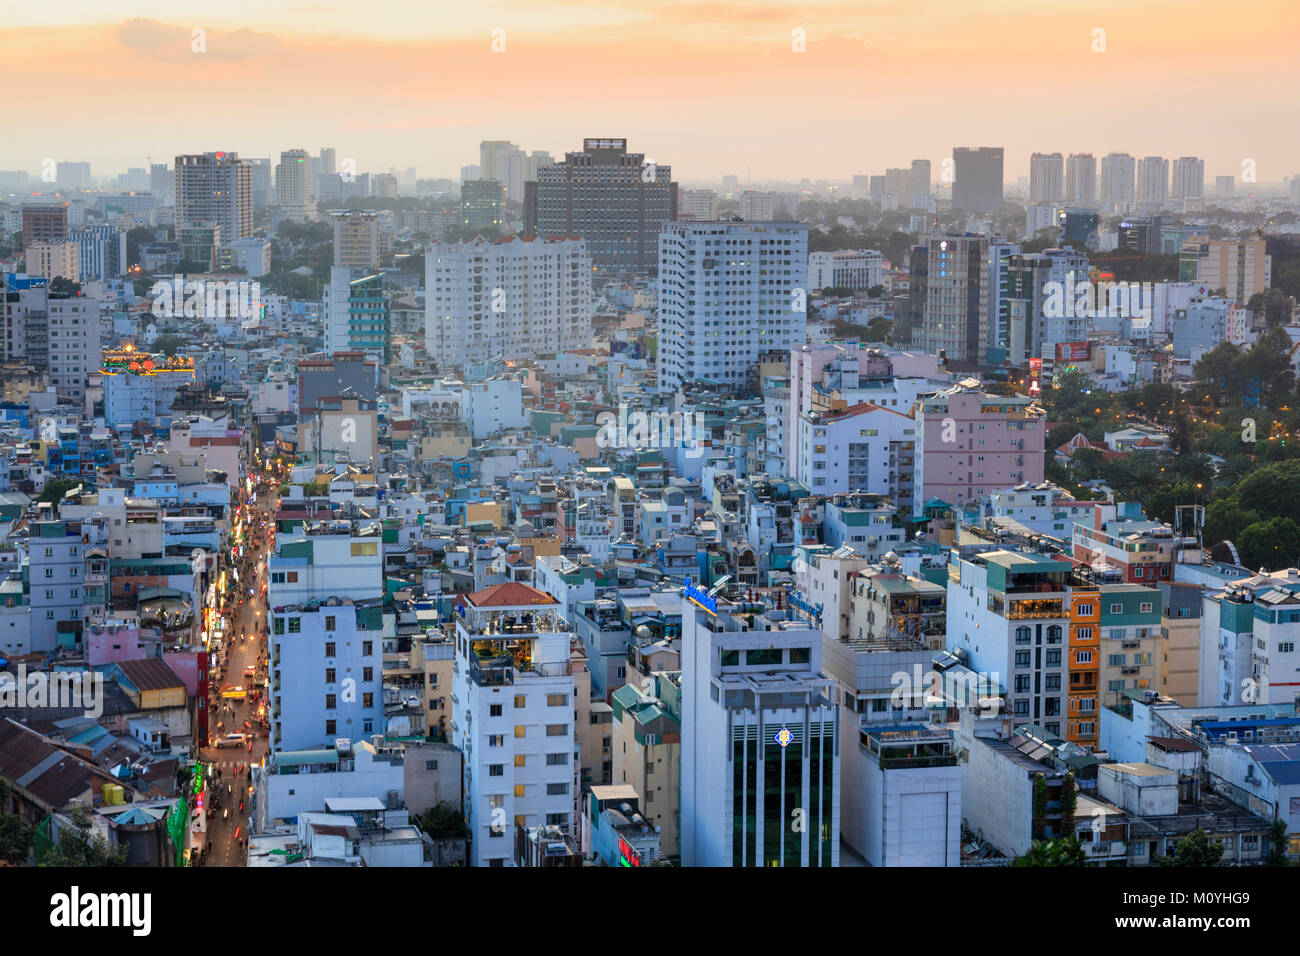 Skyline of Ho Chi Minh City with Bui Vien street in the foreground, taken at sunset Stock Photo